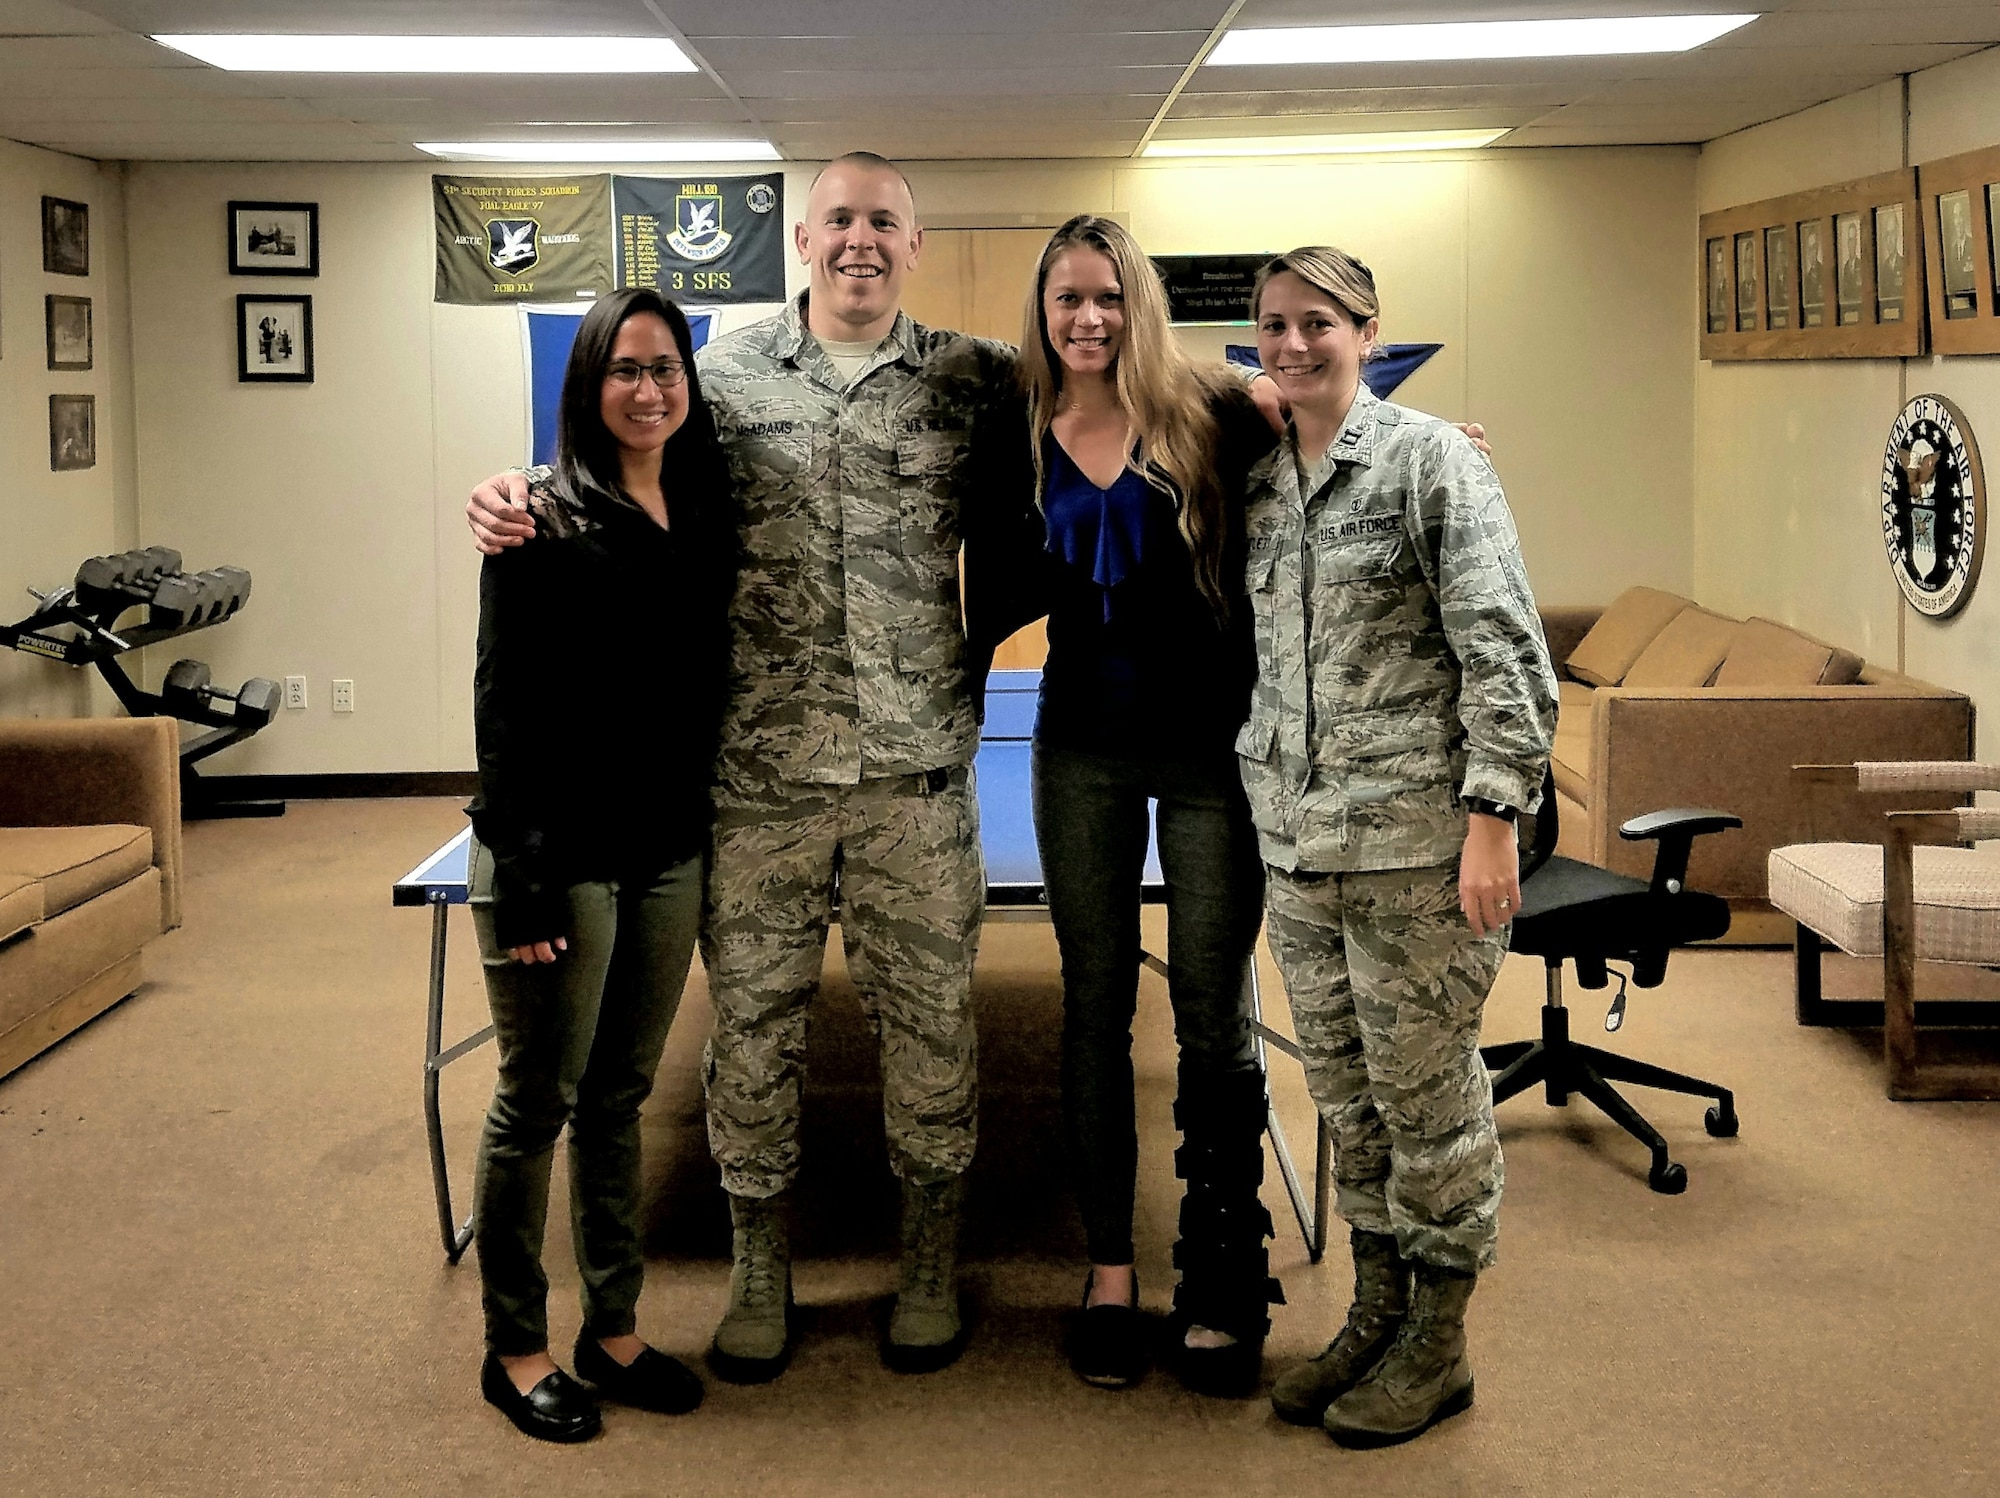 U.S. Air Force Dr. Alyssa Wu, a physical therapist, Staff Sgt. Travis McAdams, a diet technician, Dr. Natasha Swan, a psychologist, and Capt. Carissa Bartlett, a nutritionist, members of the Operational Support Team that recently stood up at Joint Base Elmendorf-Richardson, Sept. 6, 2018. OSTs embed in units throughout the base to evaluate unit health and recommend policies to improve health and readiness. (U.S. Air Force photo by Dr. Alyssa Wu)